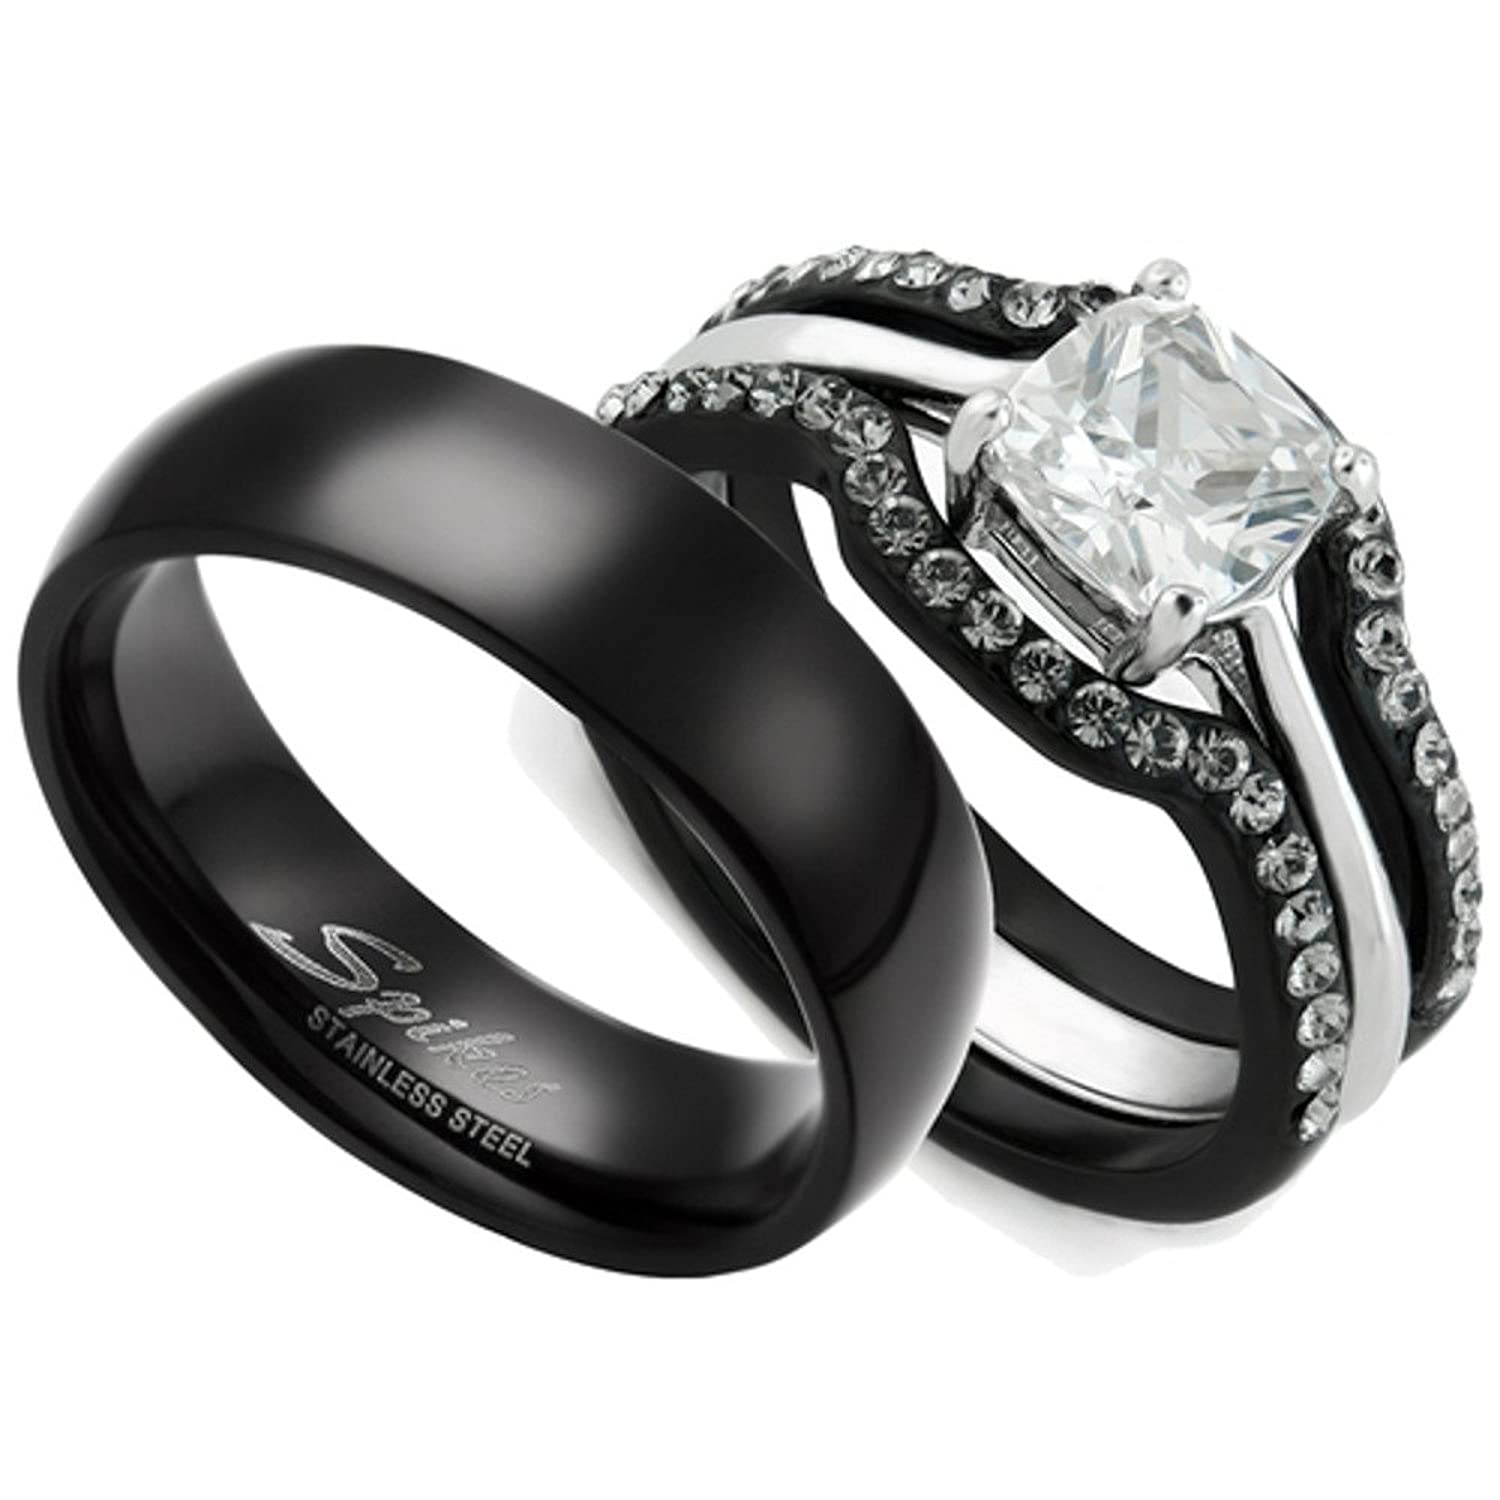 heart steel s eve ring addiction rings cz stainless floating engagement